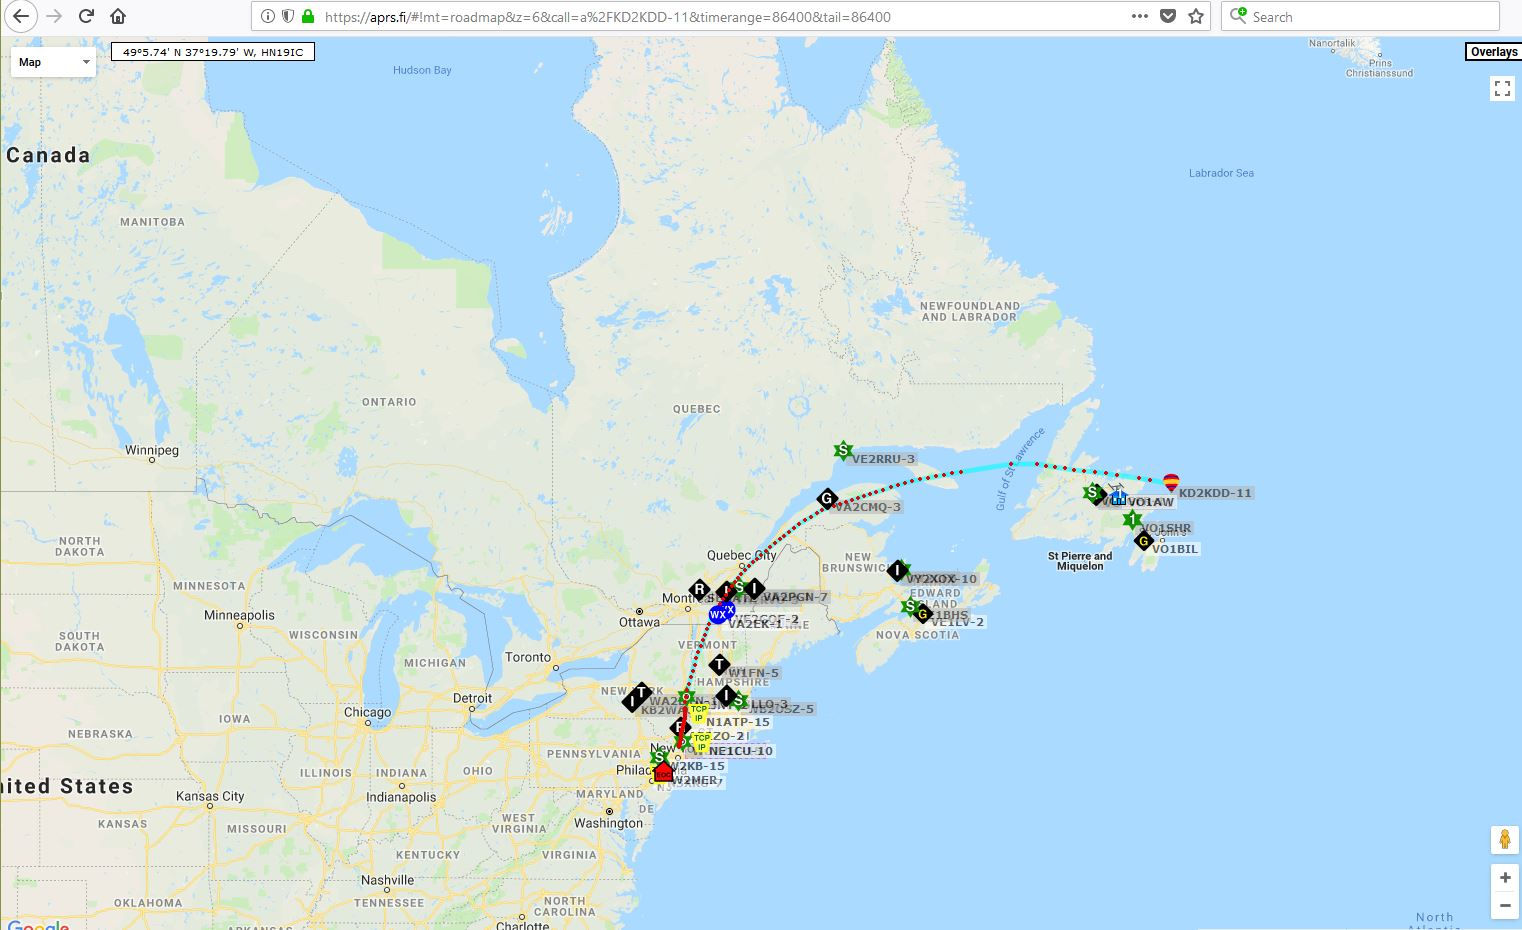 recorded by the us aprs system the european aprs system operates on a different 2 meter frequency so i do not expect to see any additional reports